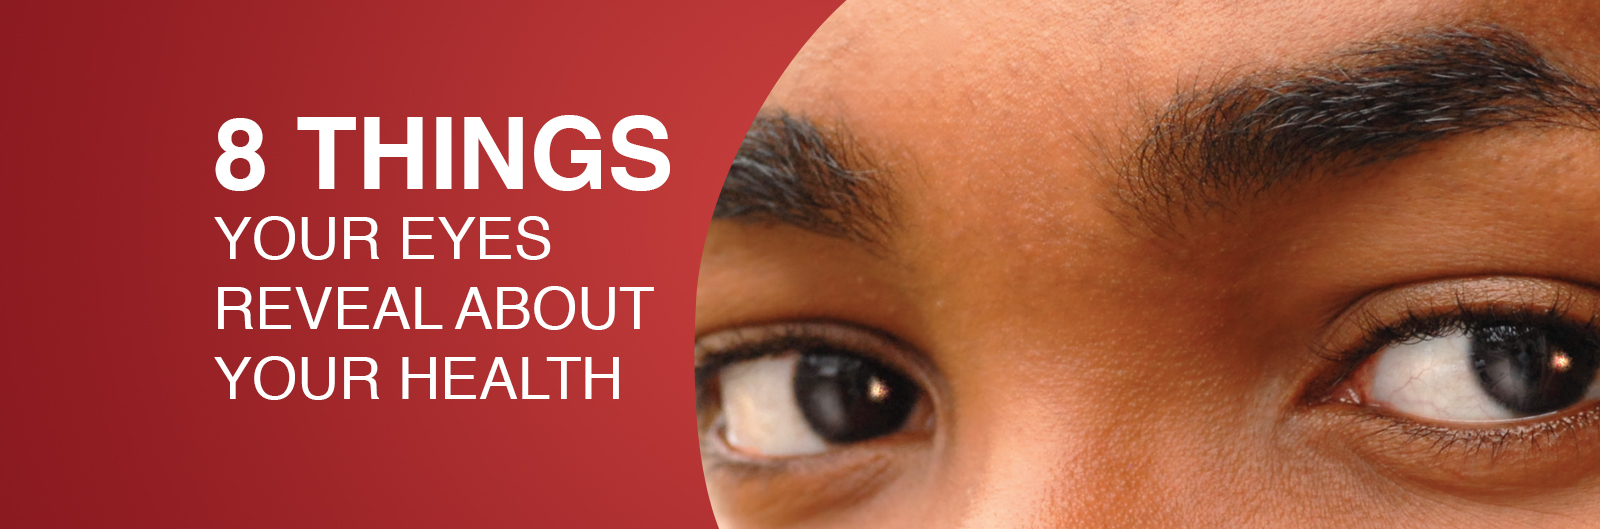 Courts Optical Barbados | Eye Care Services & Eye specialist In Barbados